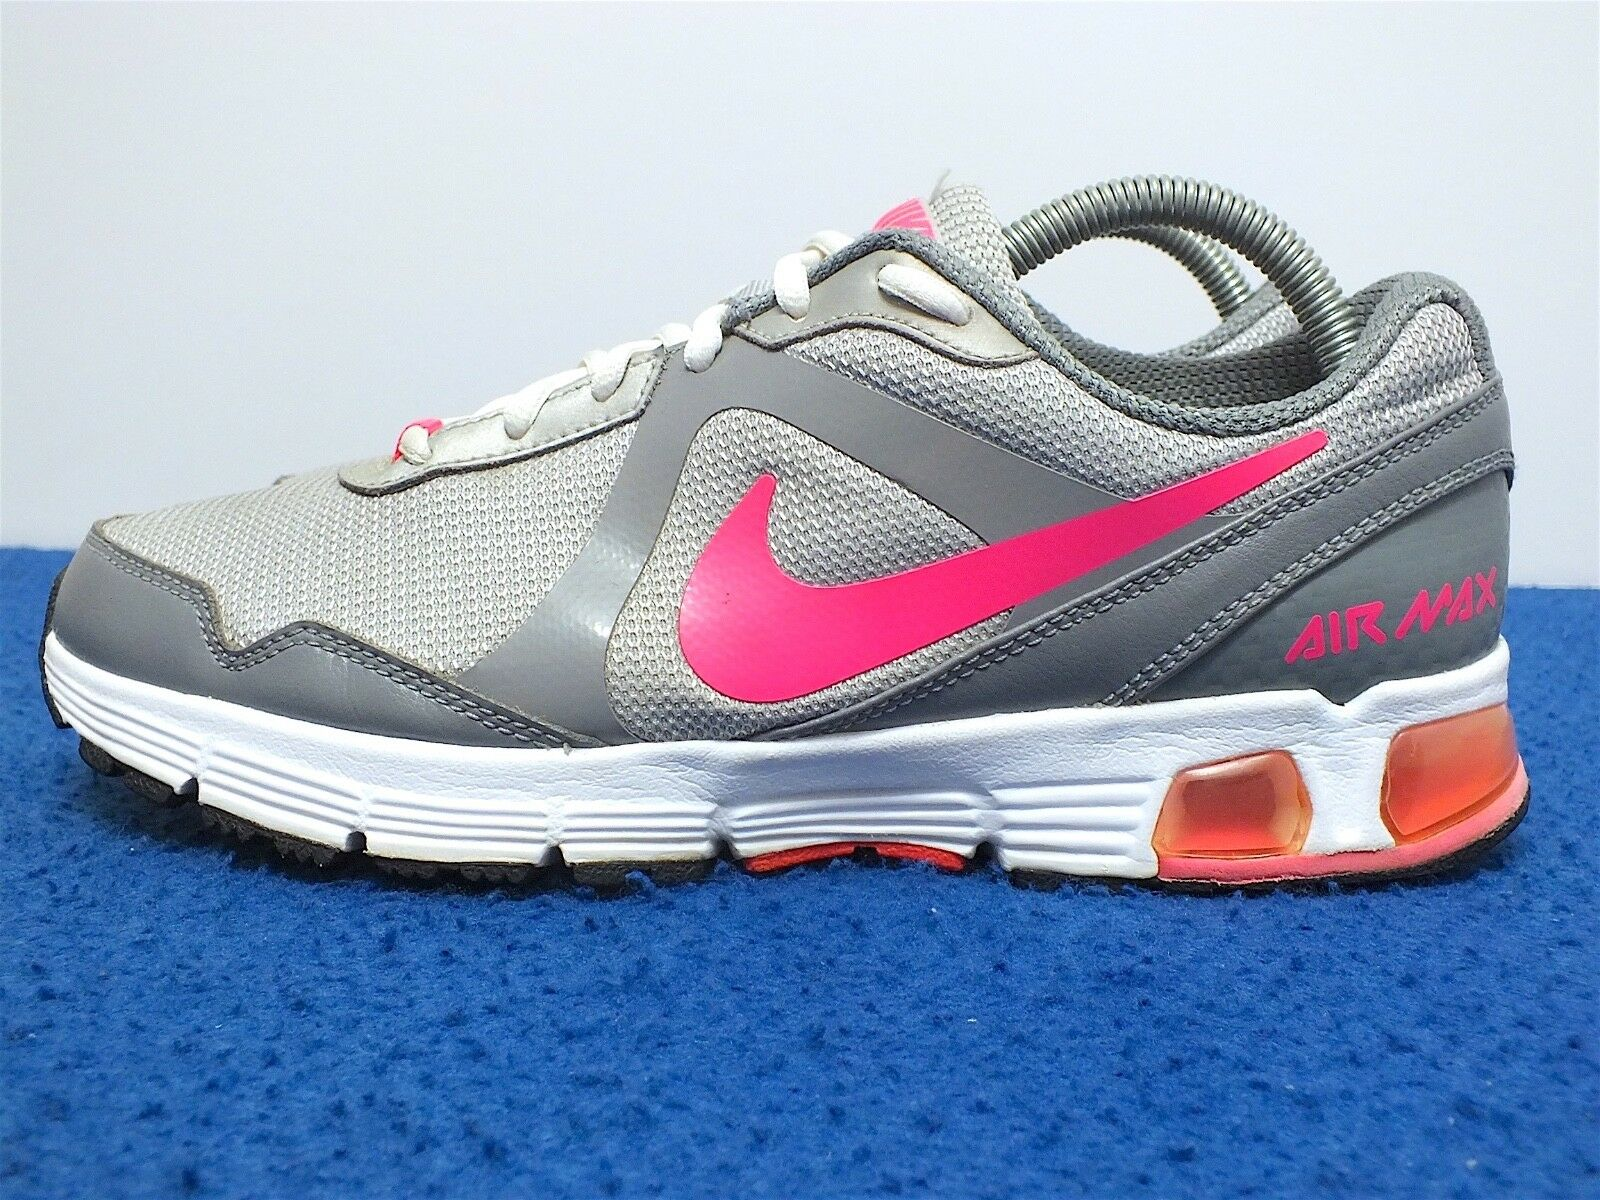 Nike Air Max Run Lite 2009 Women's Running shoes Silver White Pink Size 9(US)